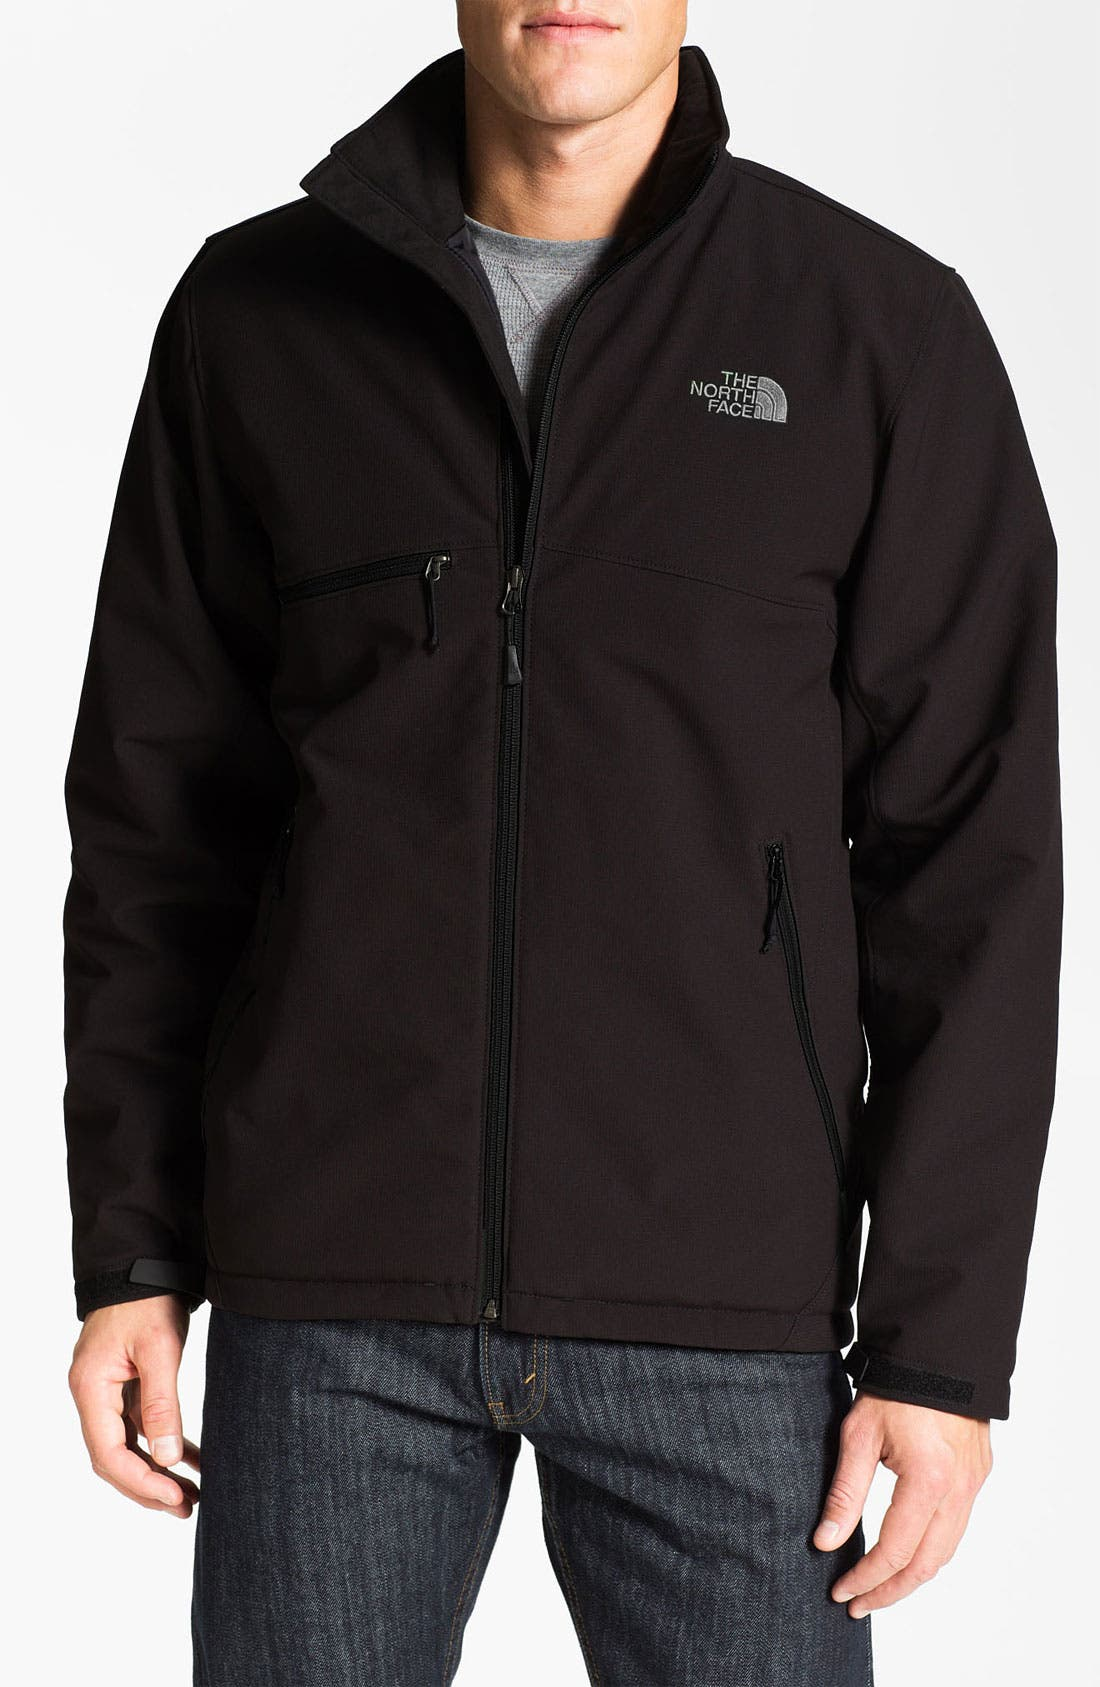 Alternate Image 1 Selected - The North Face 'Canyonlands' Insulated Jacket